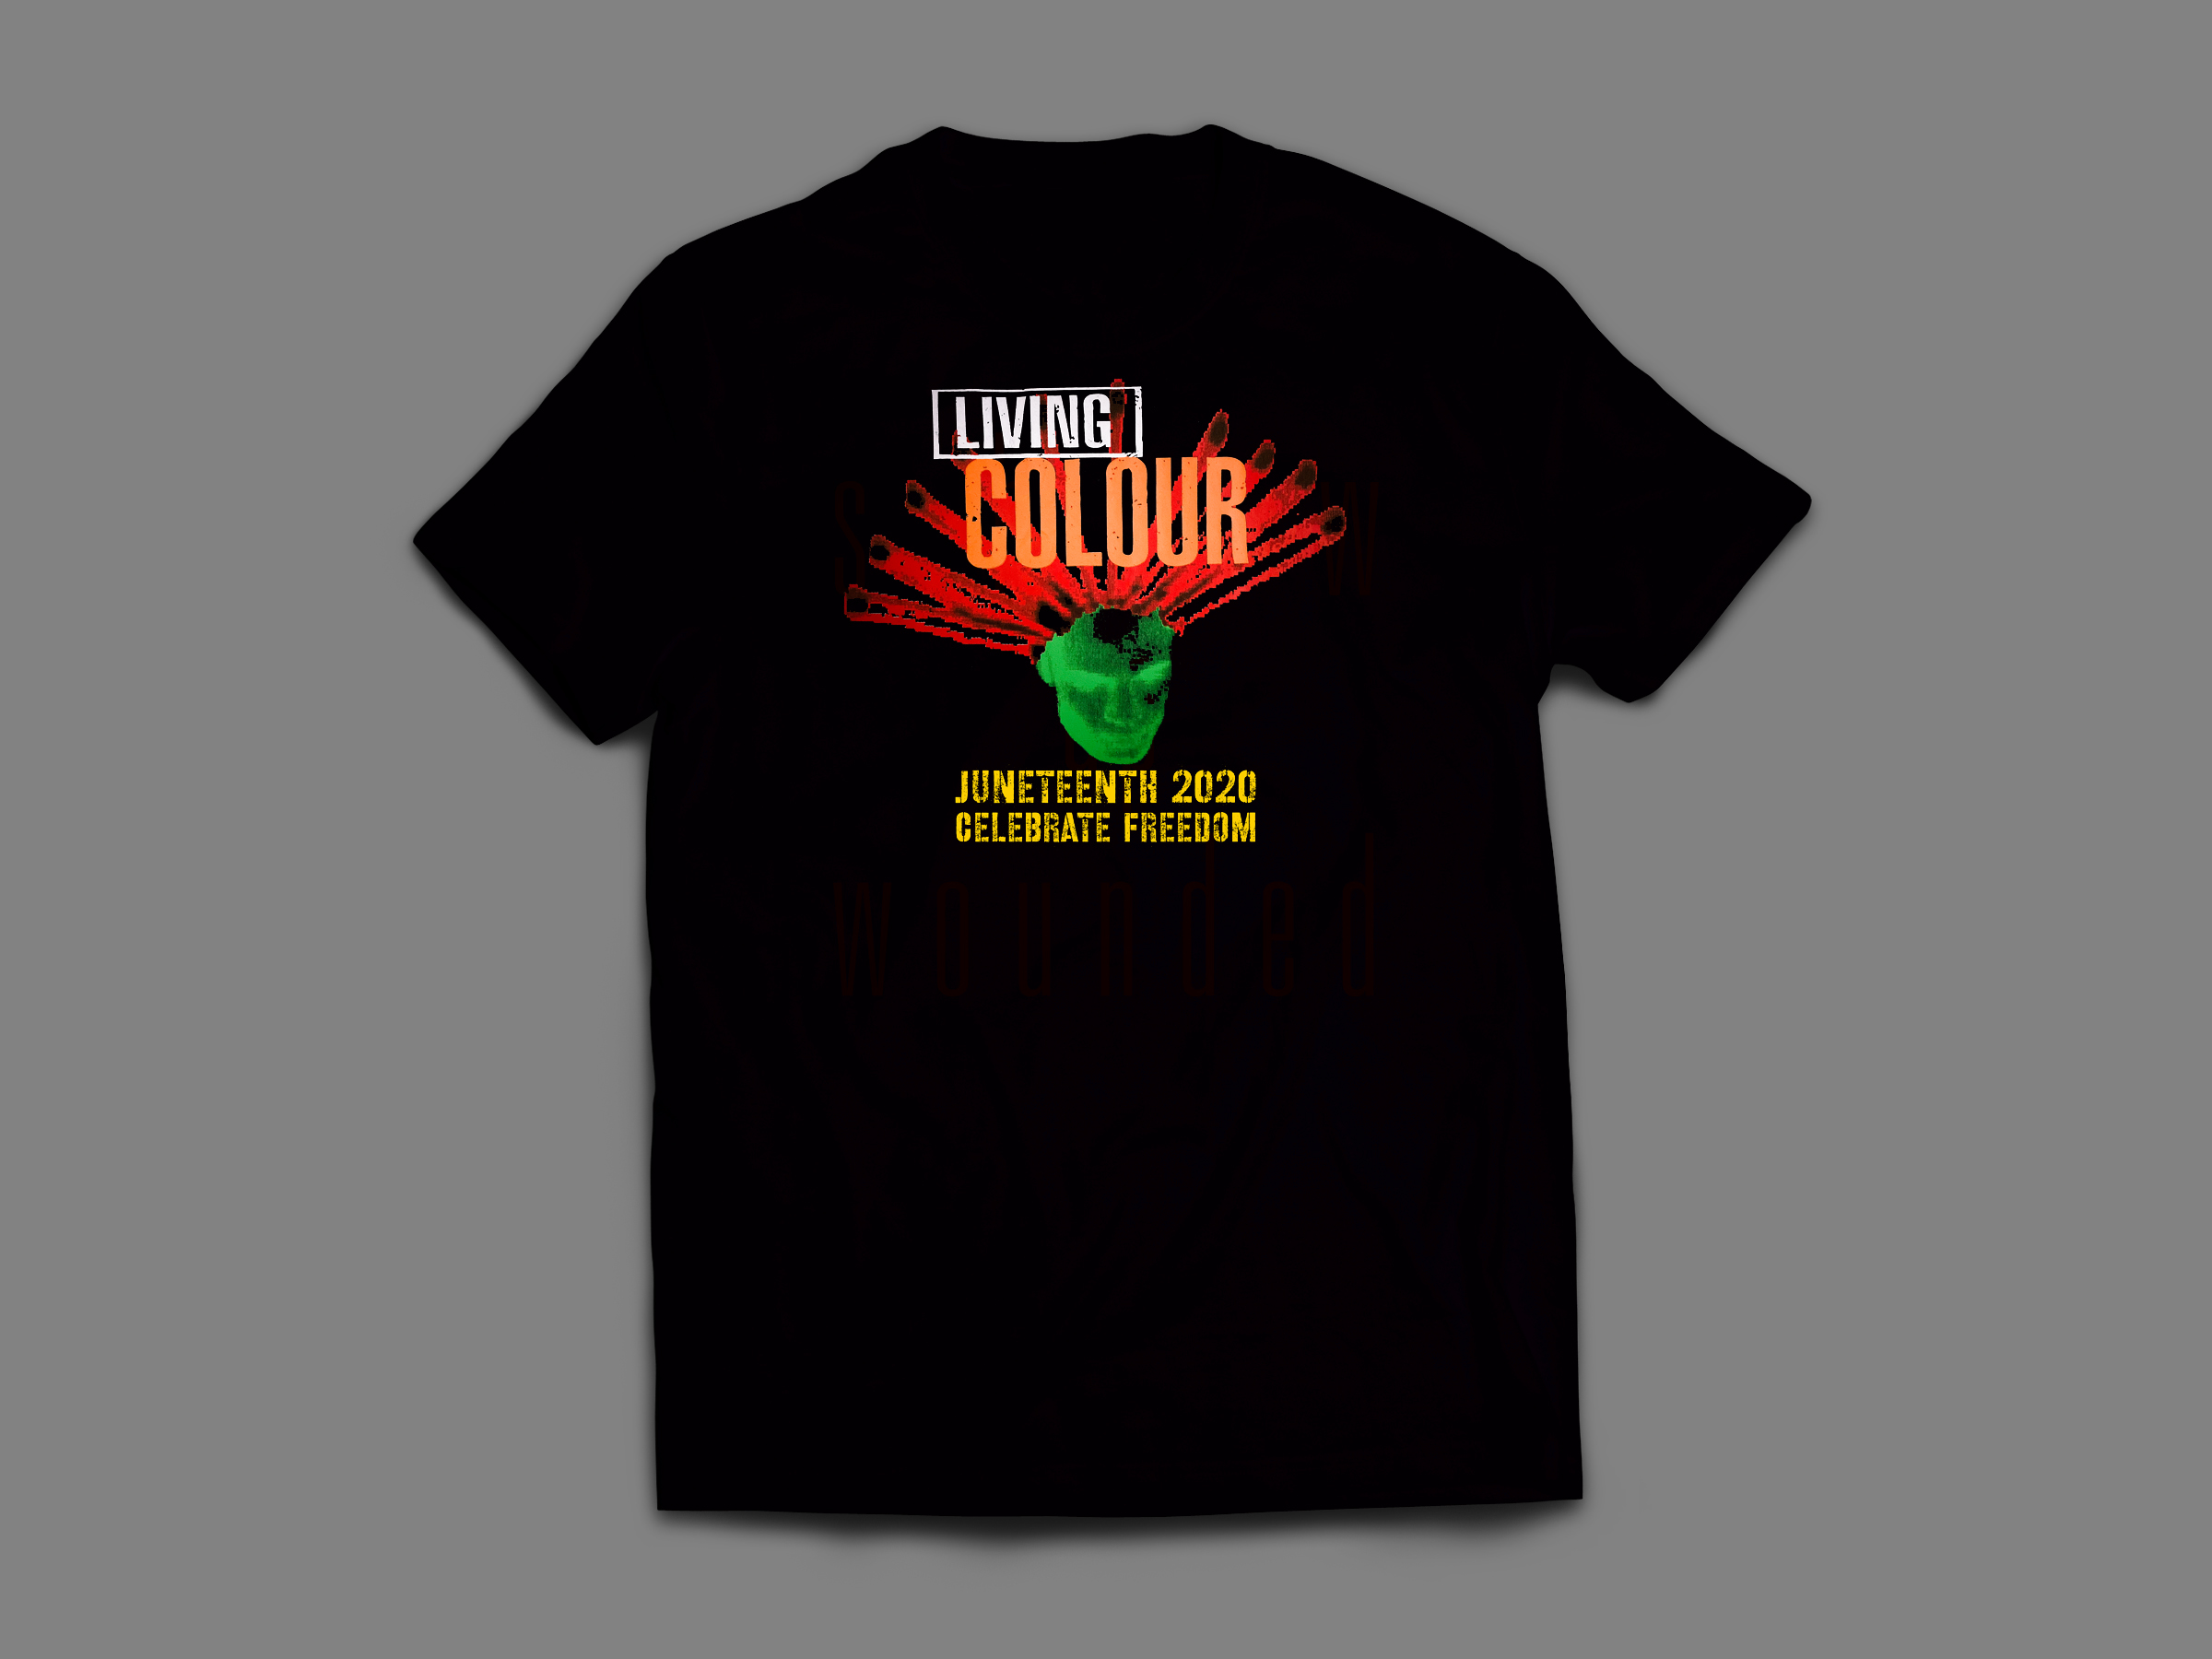 Living Colour Juneteenth T-shirt Pre-order